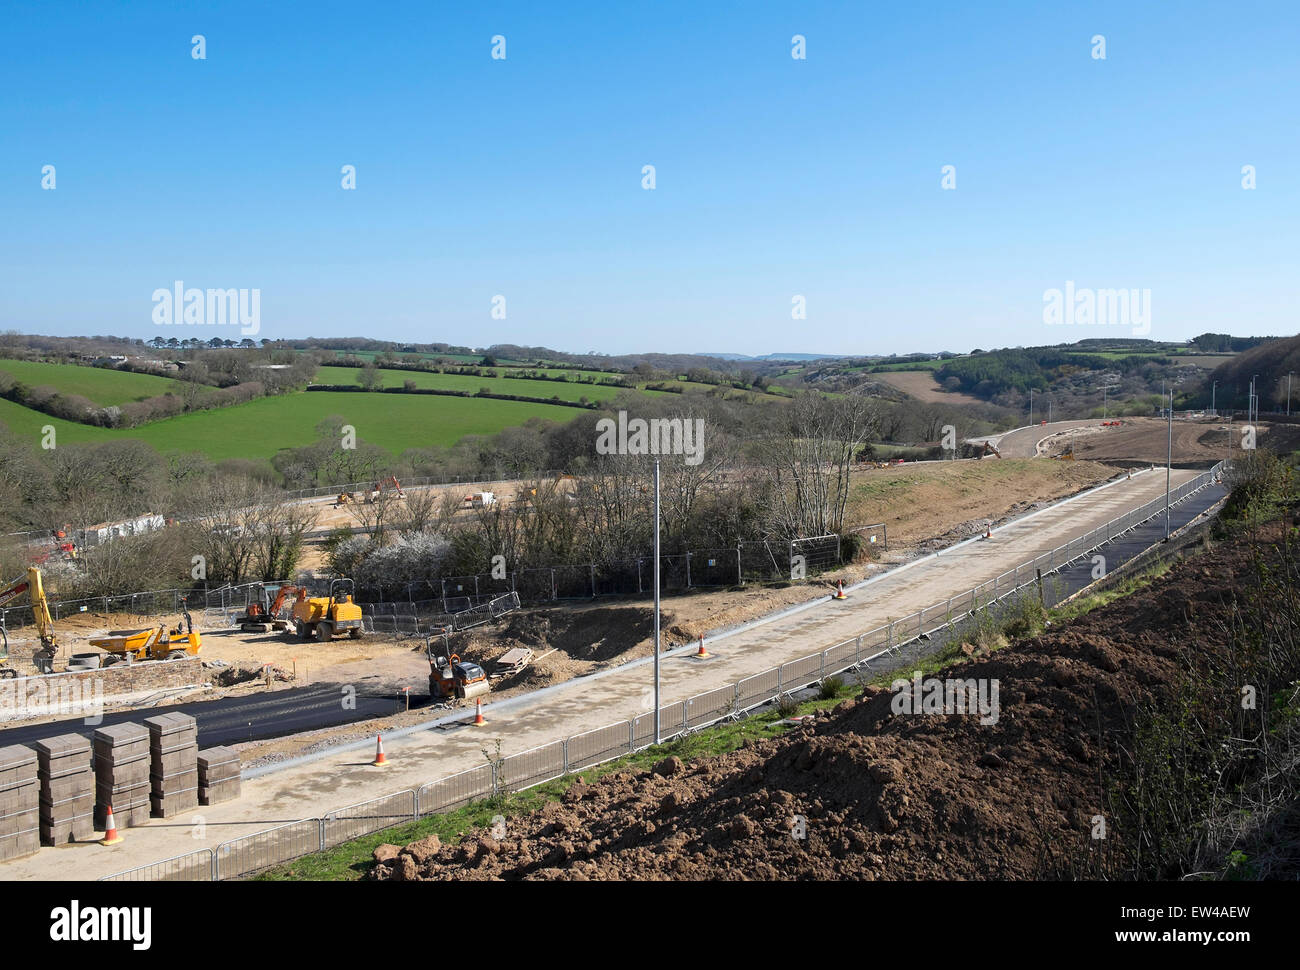 A greenbelt new development for housing and supermarket on Royal Duchy land near Truro in Cornwall, UK - Stock Image